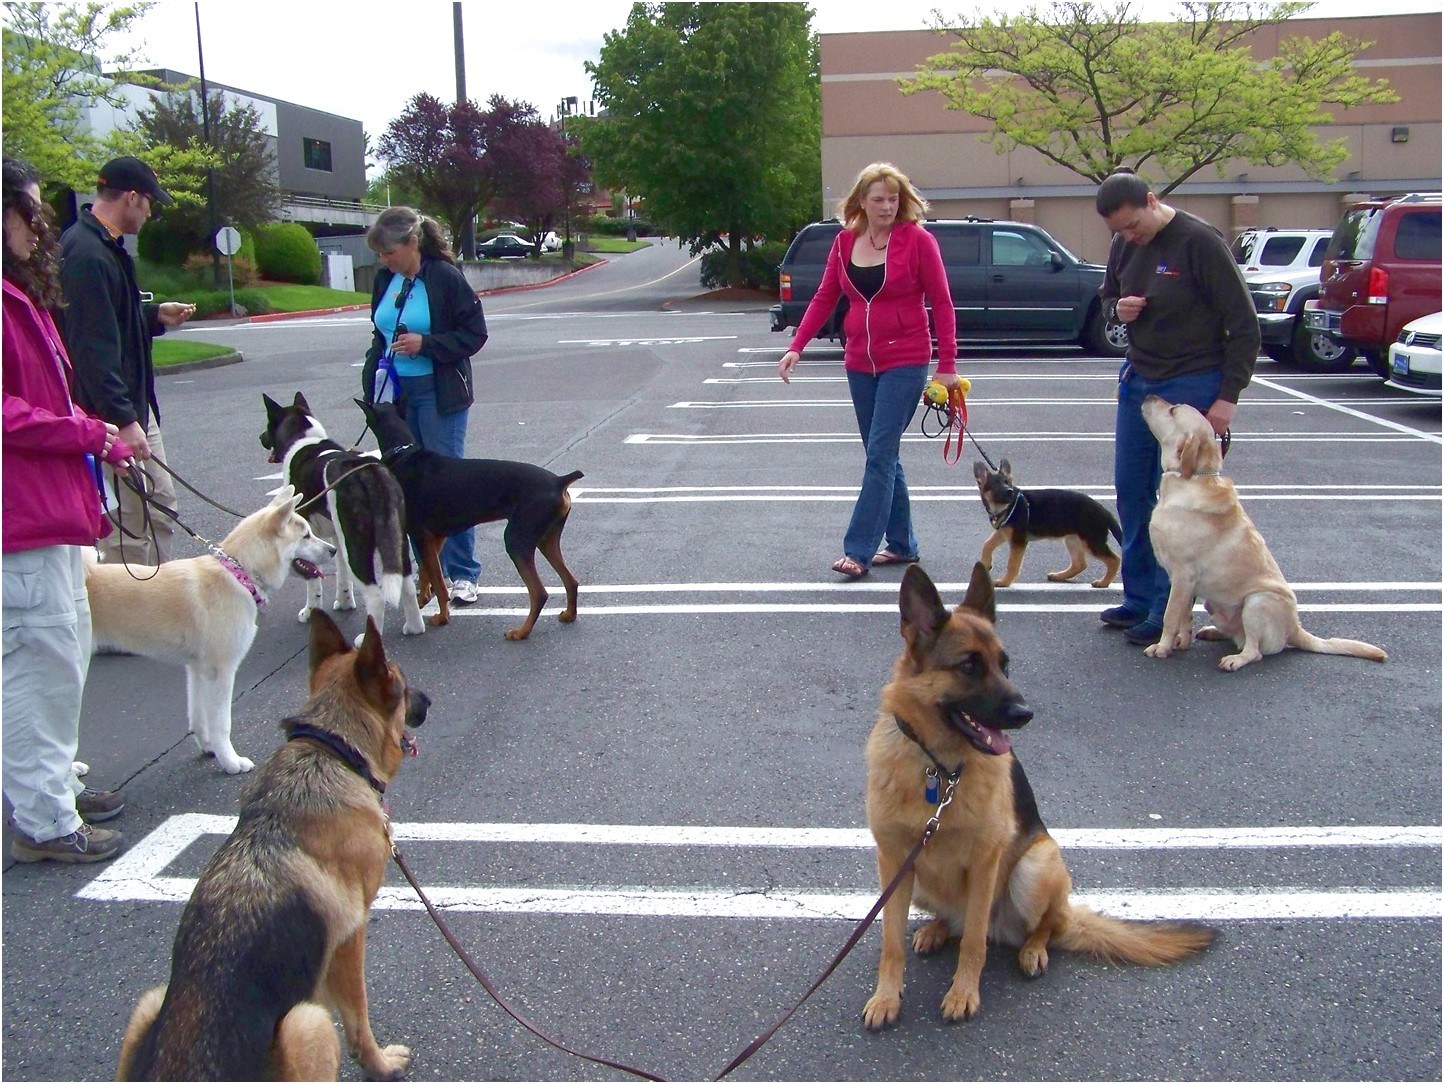 therapy dog training schools near me